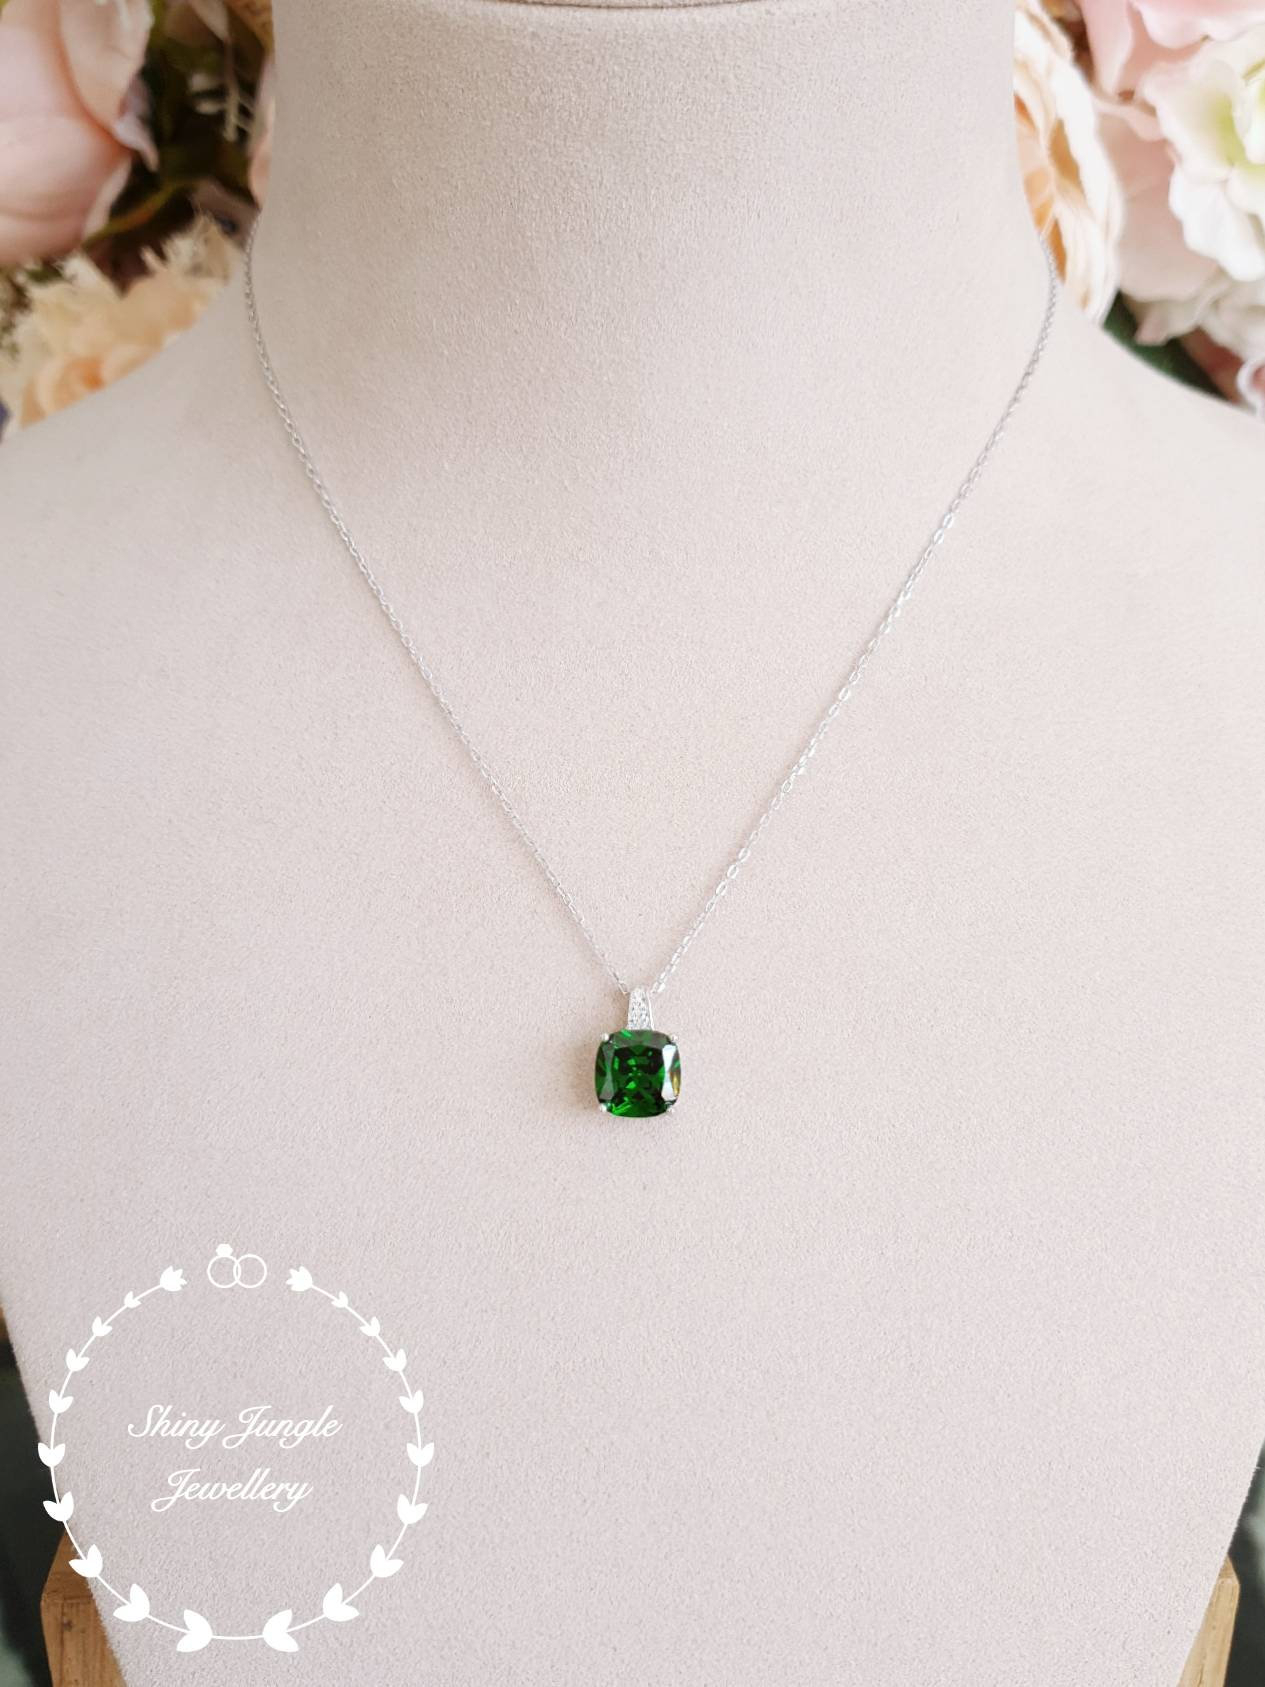 Cushion Emerald Pendant, 3ct Vivid Green Lab Emerald Necklace With Intended For 2019 Royal Green May Birthstone Locket Element Necklaces (View 8 of 25)